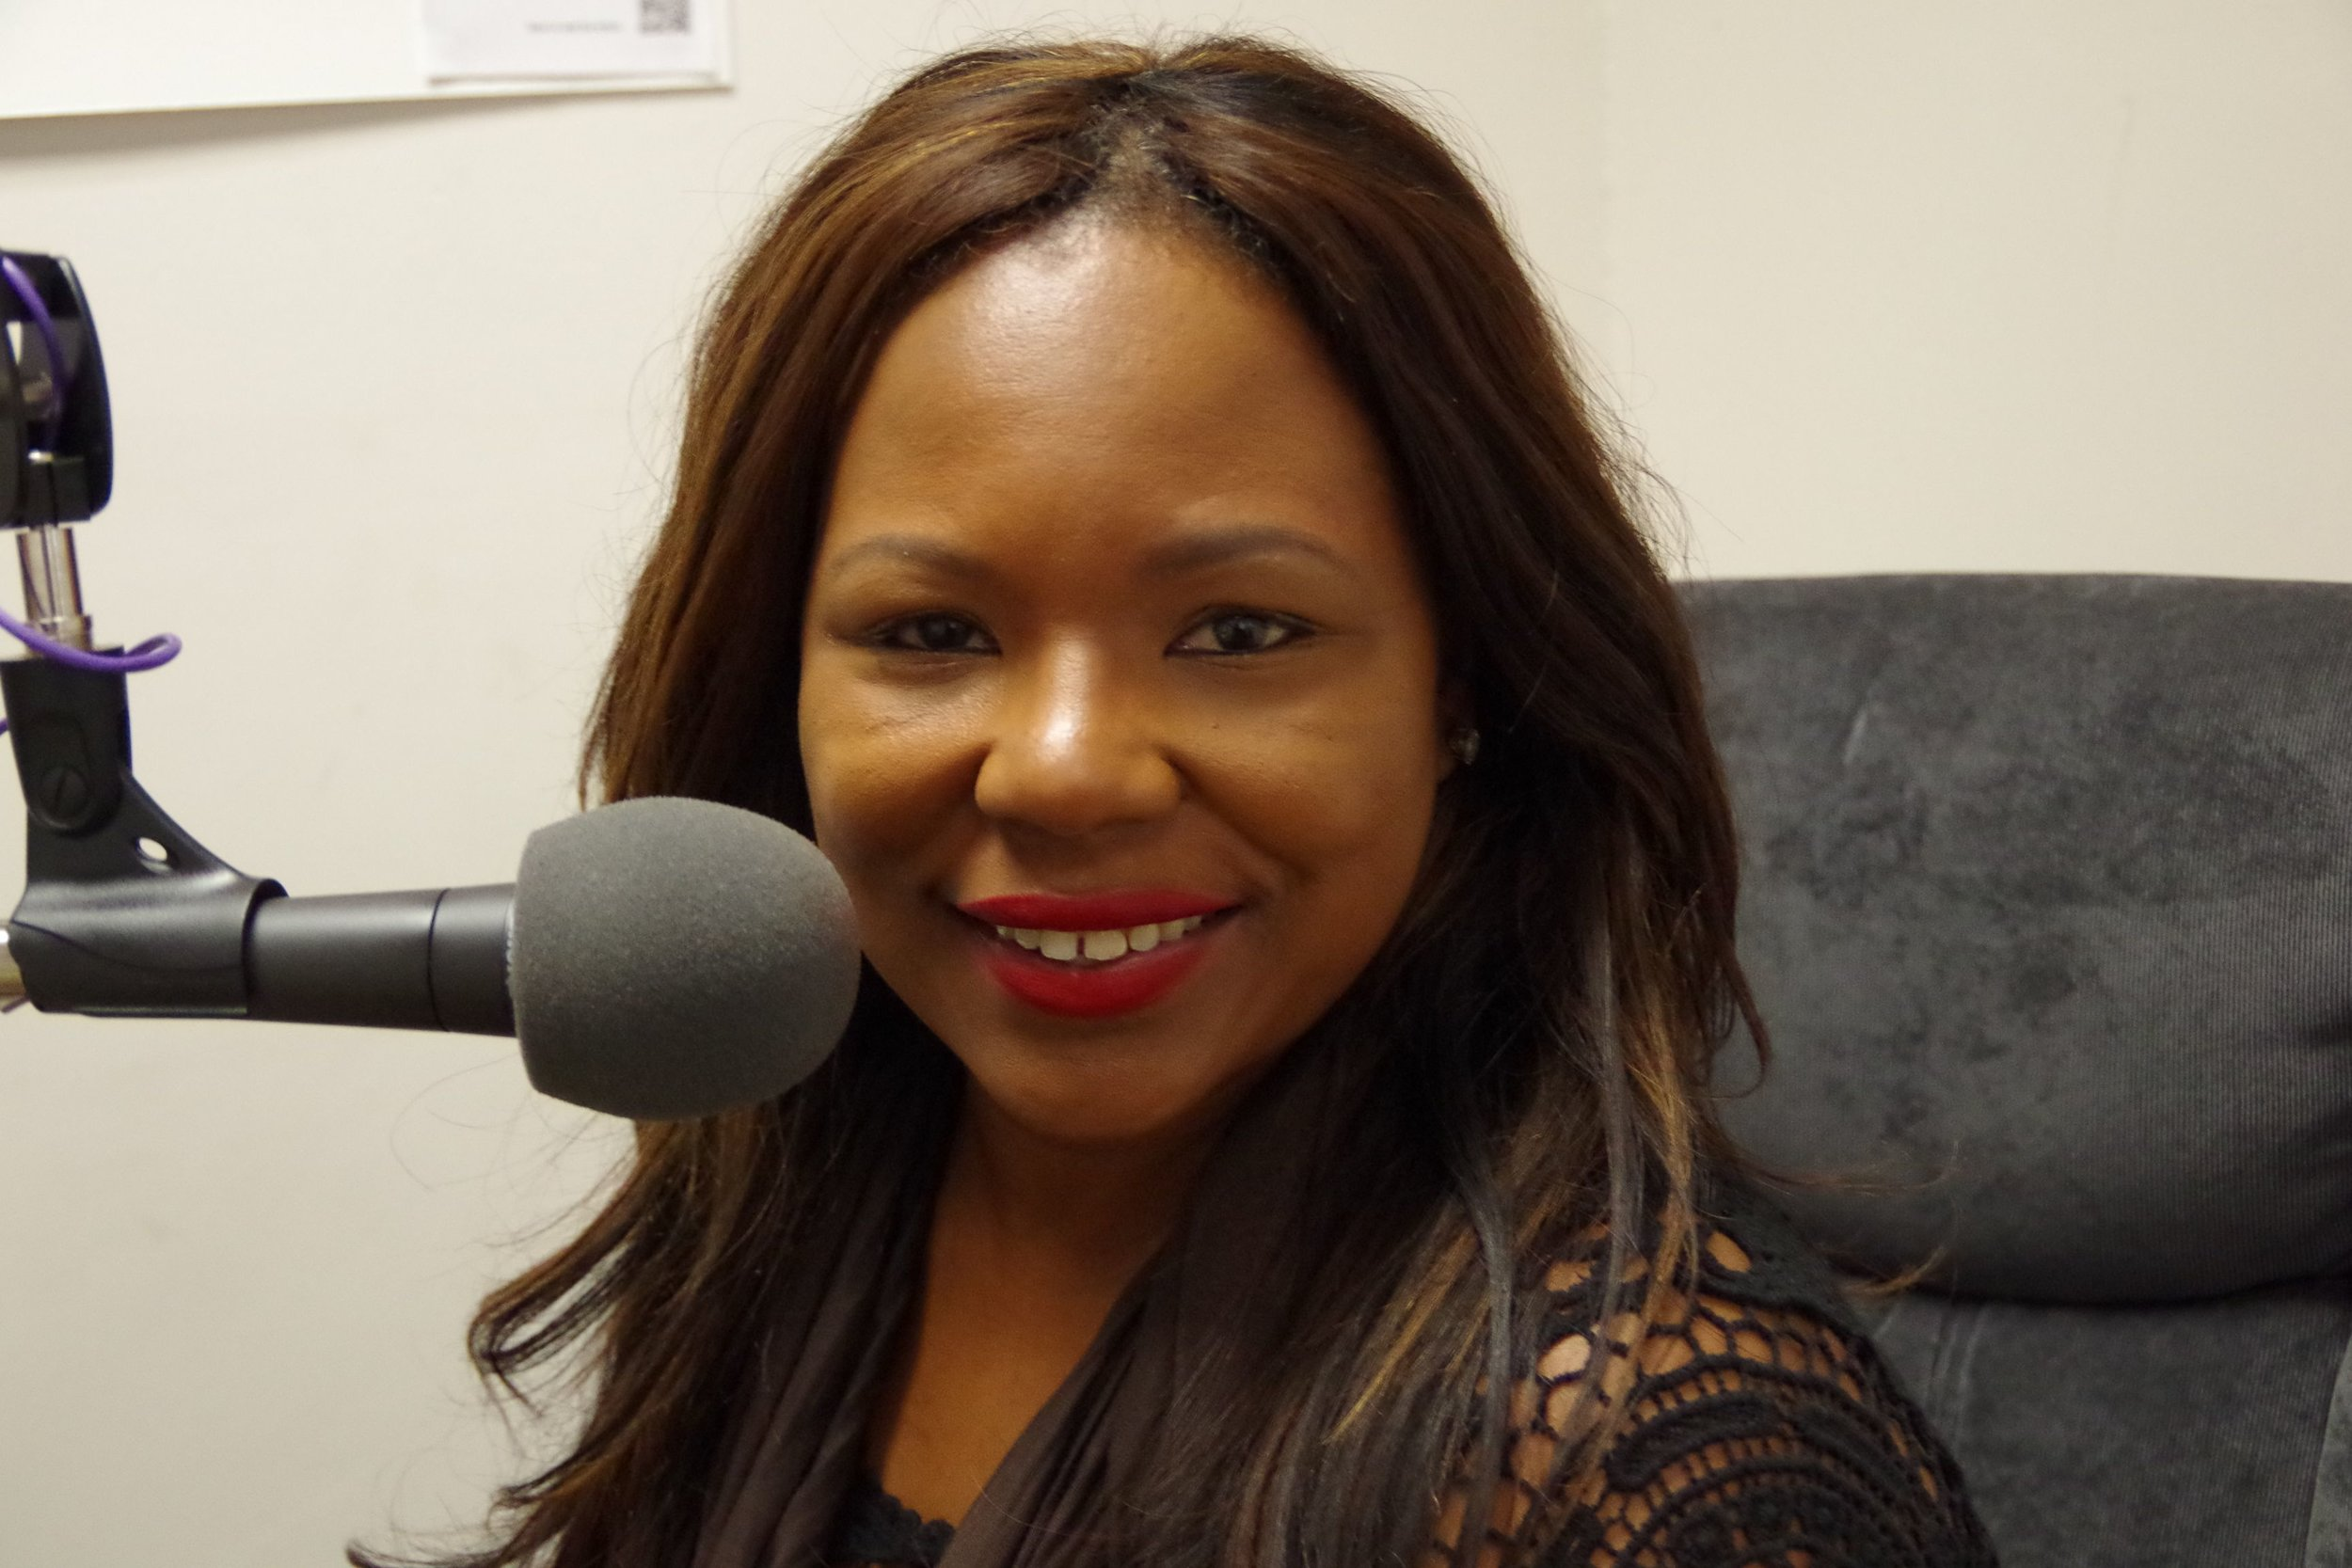 """Today on """"Alisa's Culture Club"""" host Alisa Bowens-Mercado discusses relationships and gives some Valentine's Day gifting advice."""